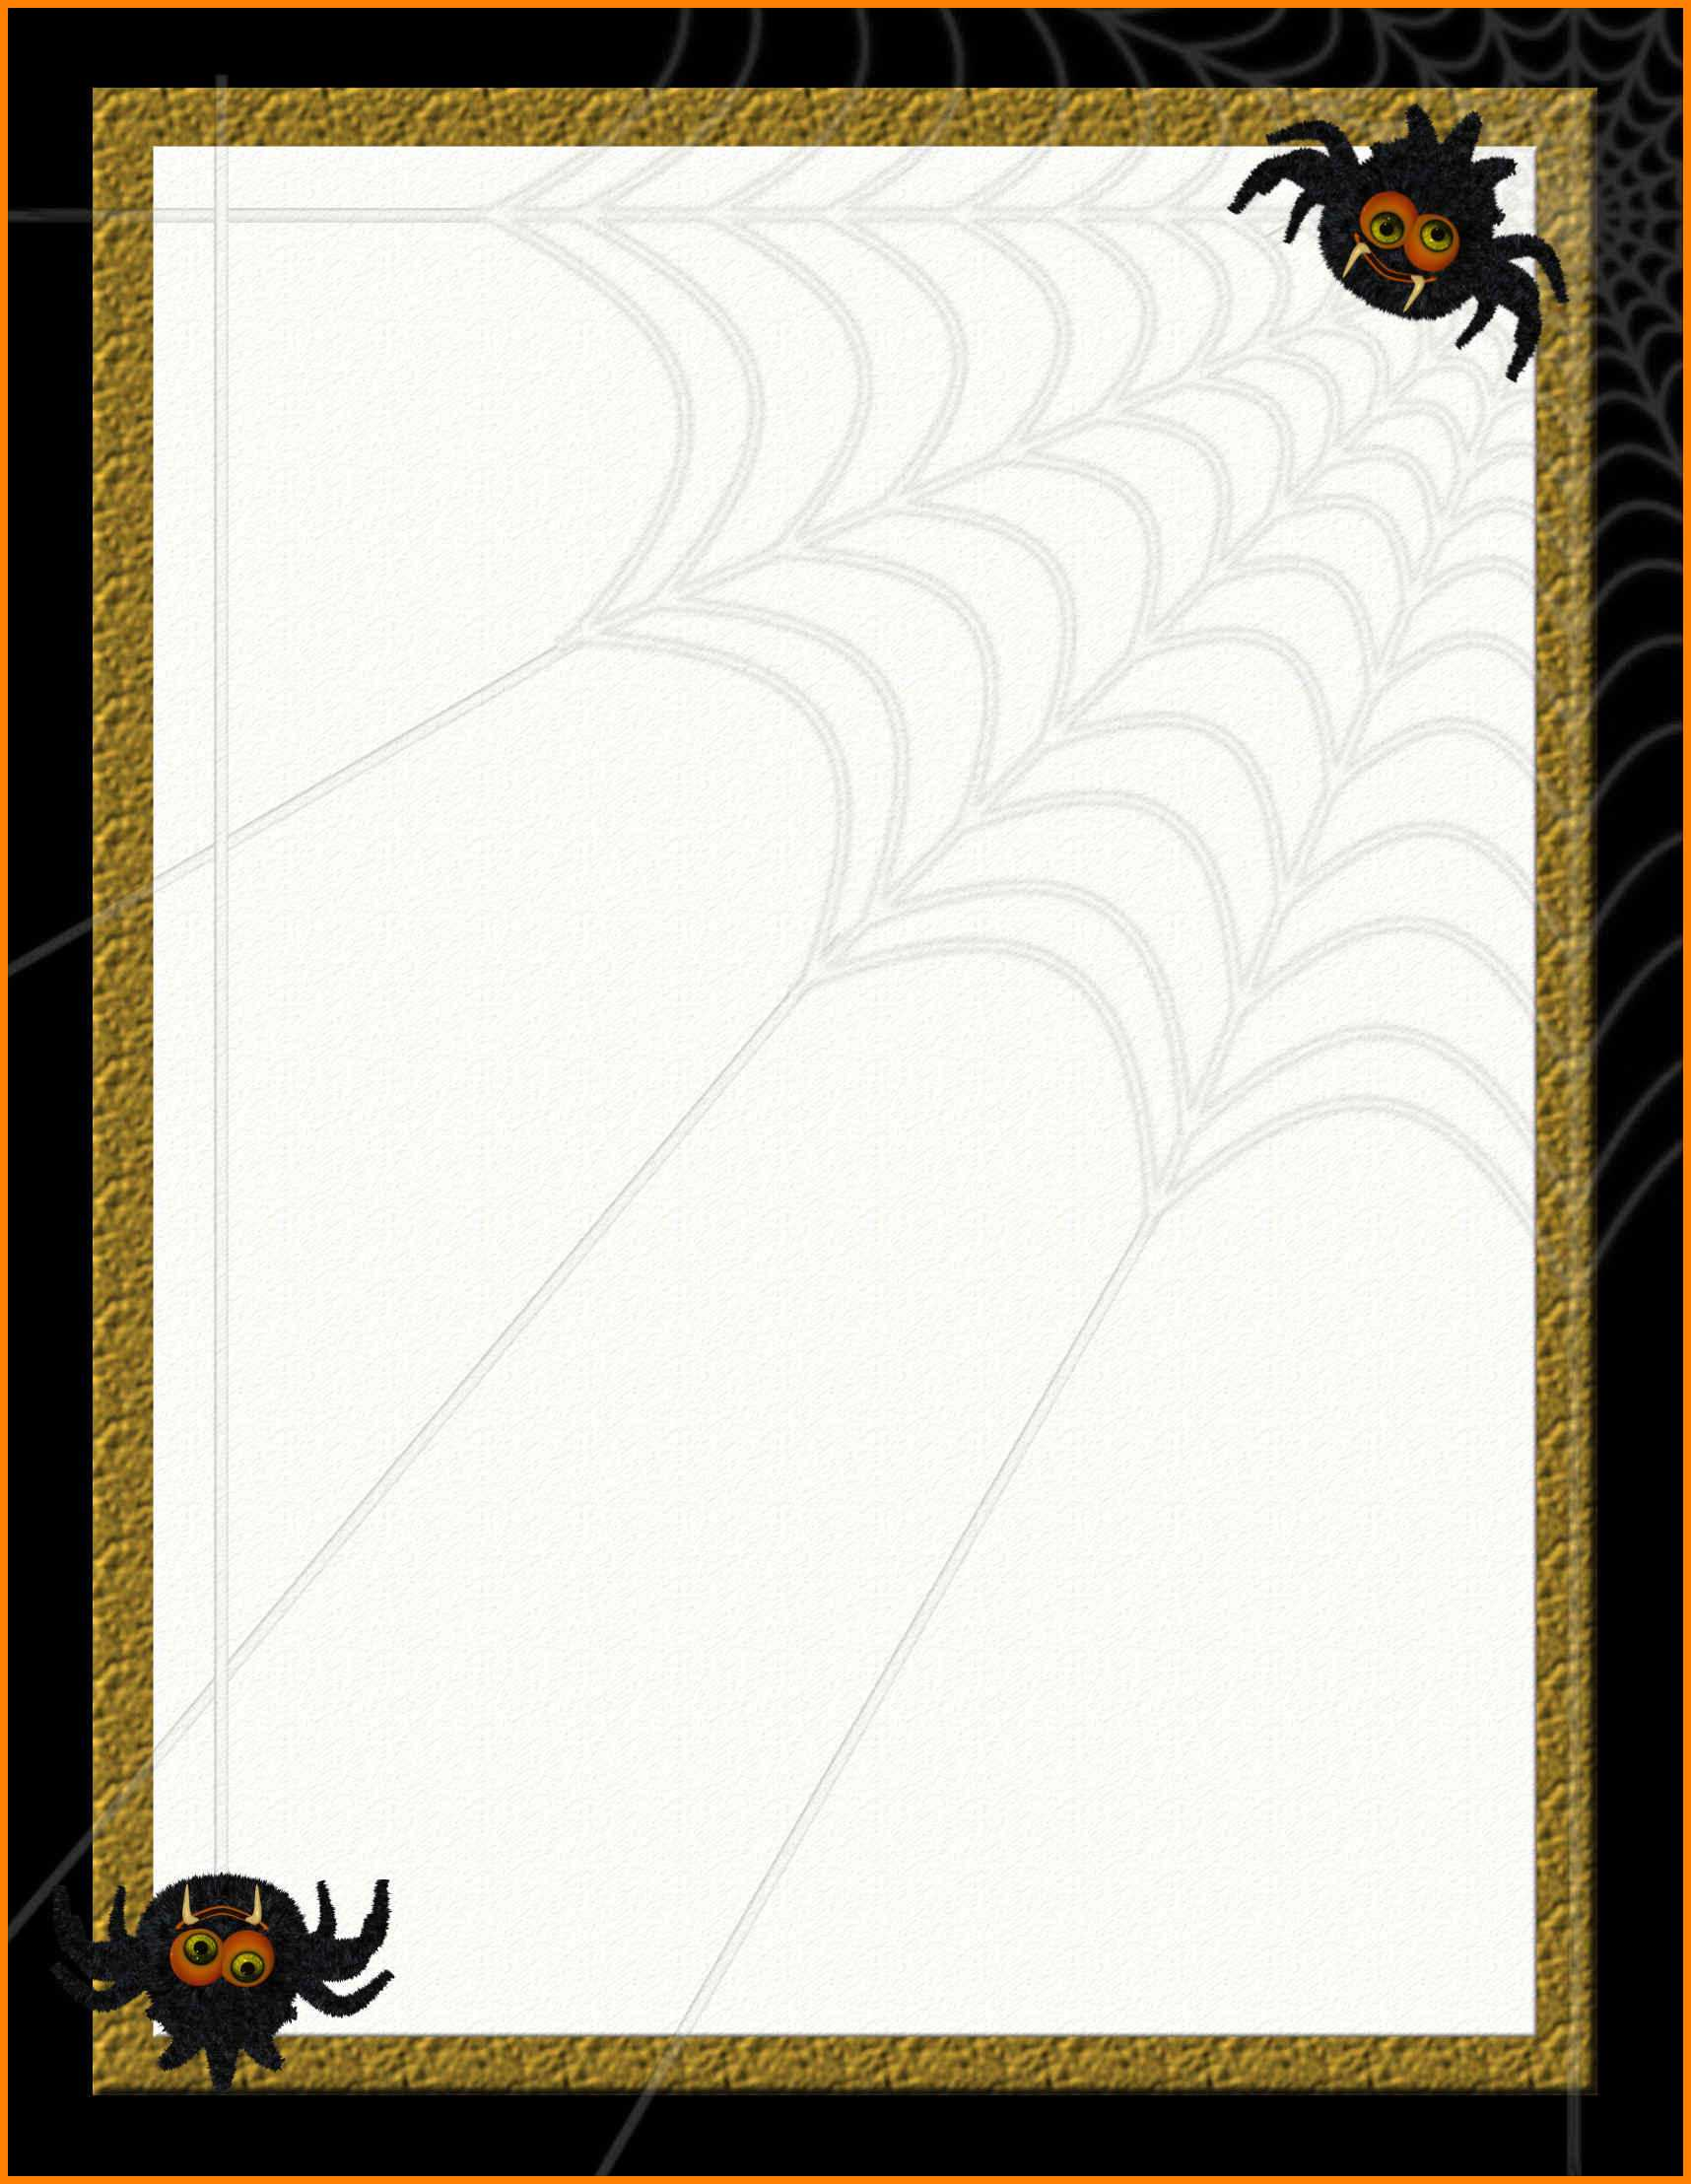 003 Halloween Word Template Free Stationery Templates 234638 within Free Halloween Templates For Word